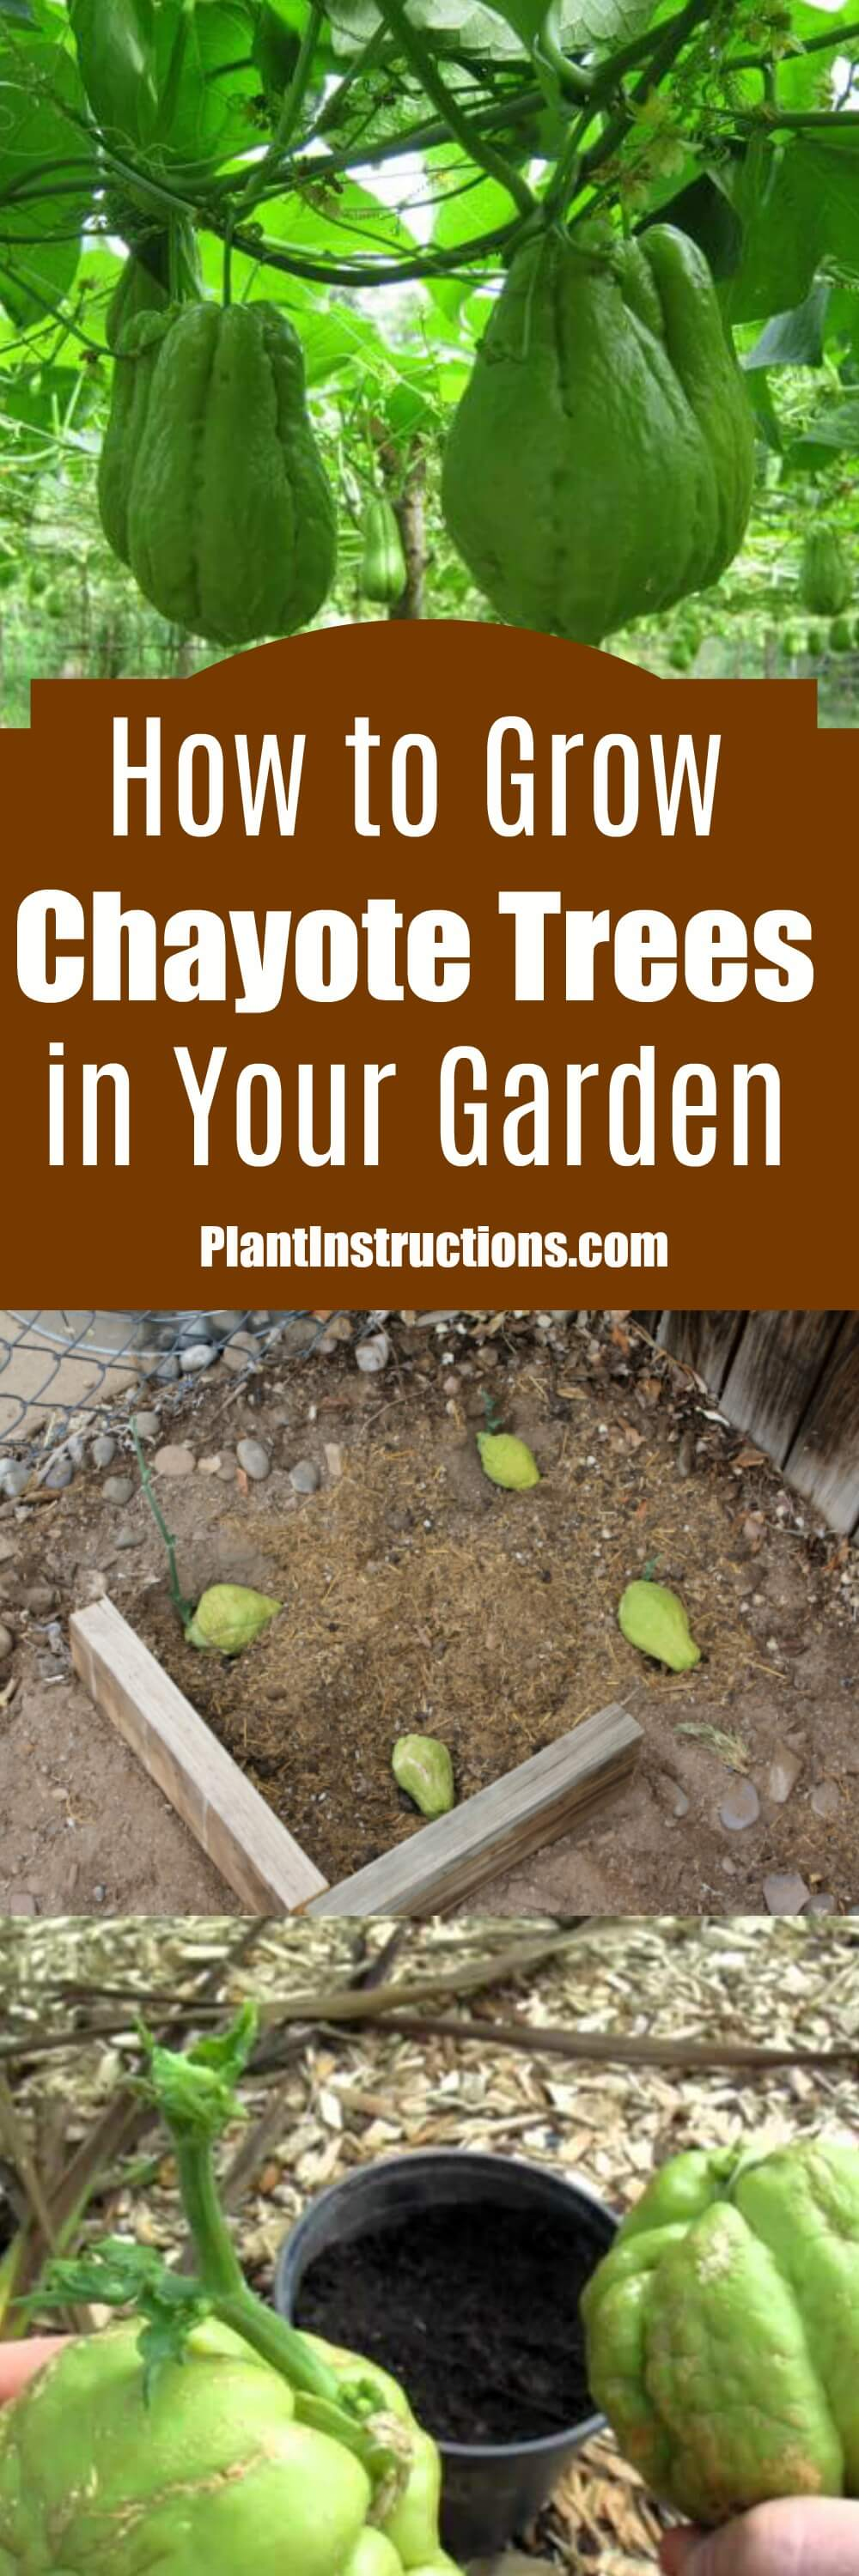 Chayotes are native to Mexico and Guatemala, but you can actually grow them right in your garden! Learn more about how to grow chayotes!